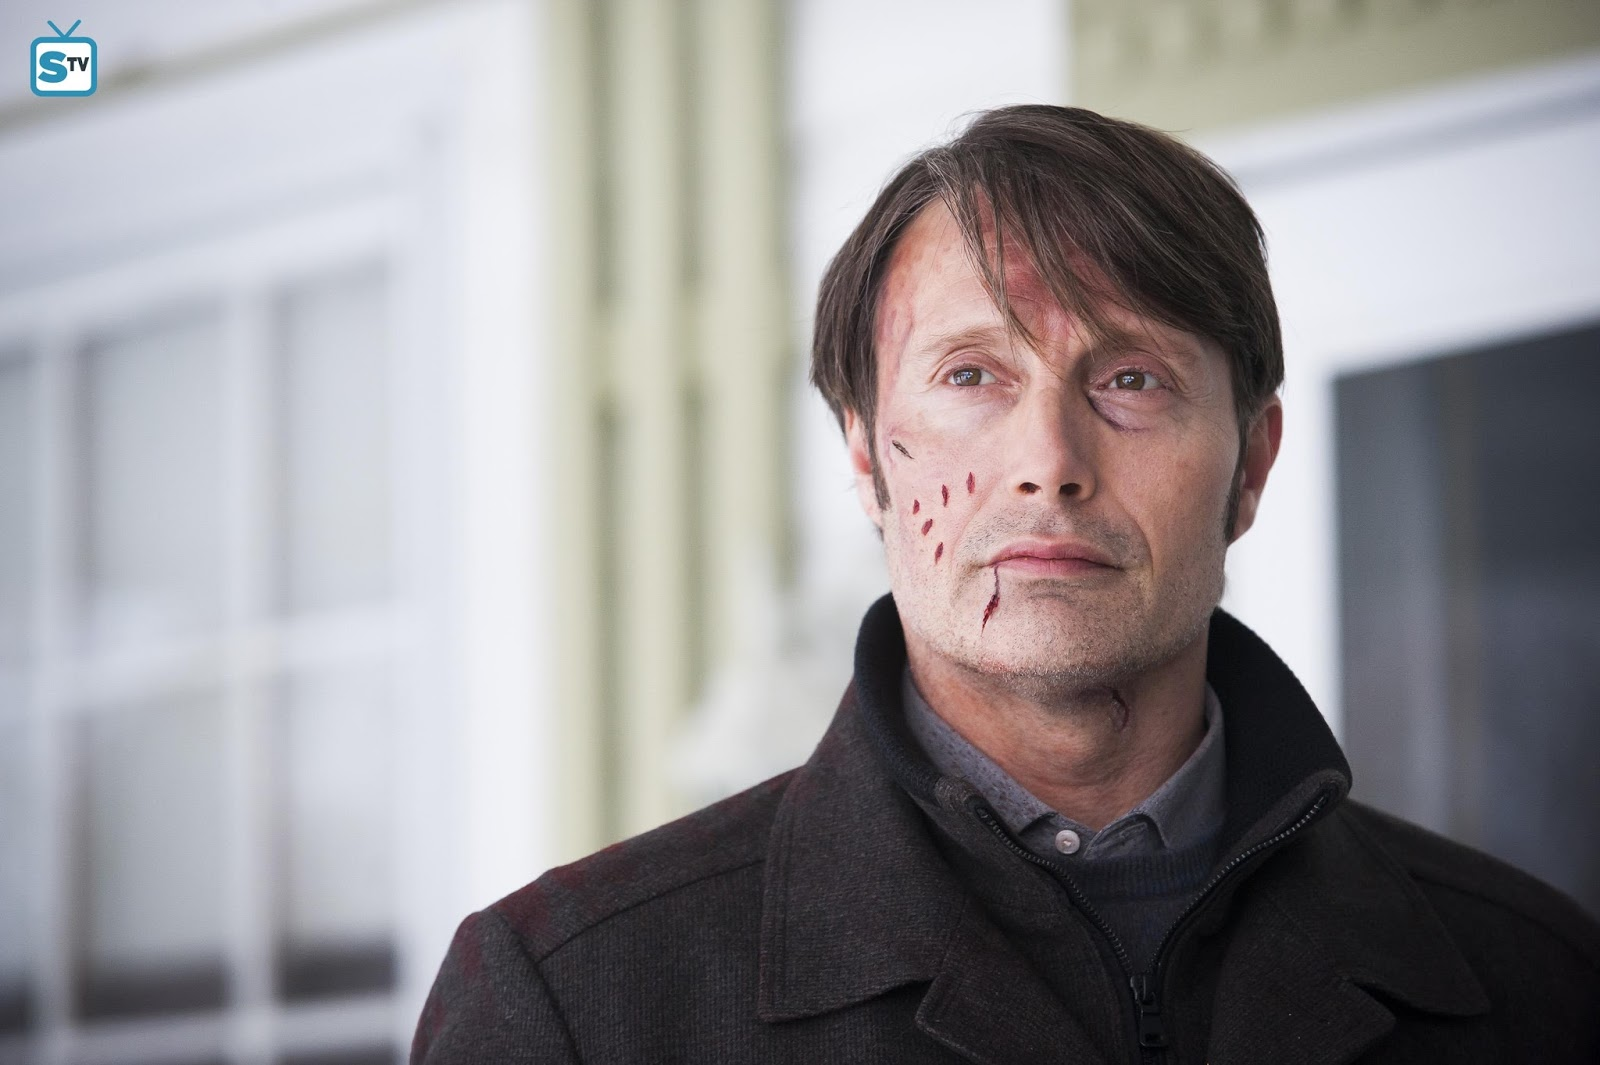 Hannibal - Digestivo - Review